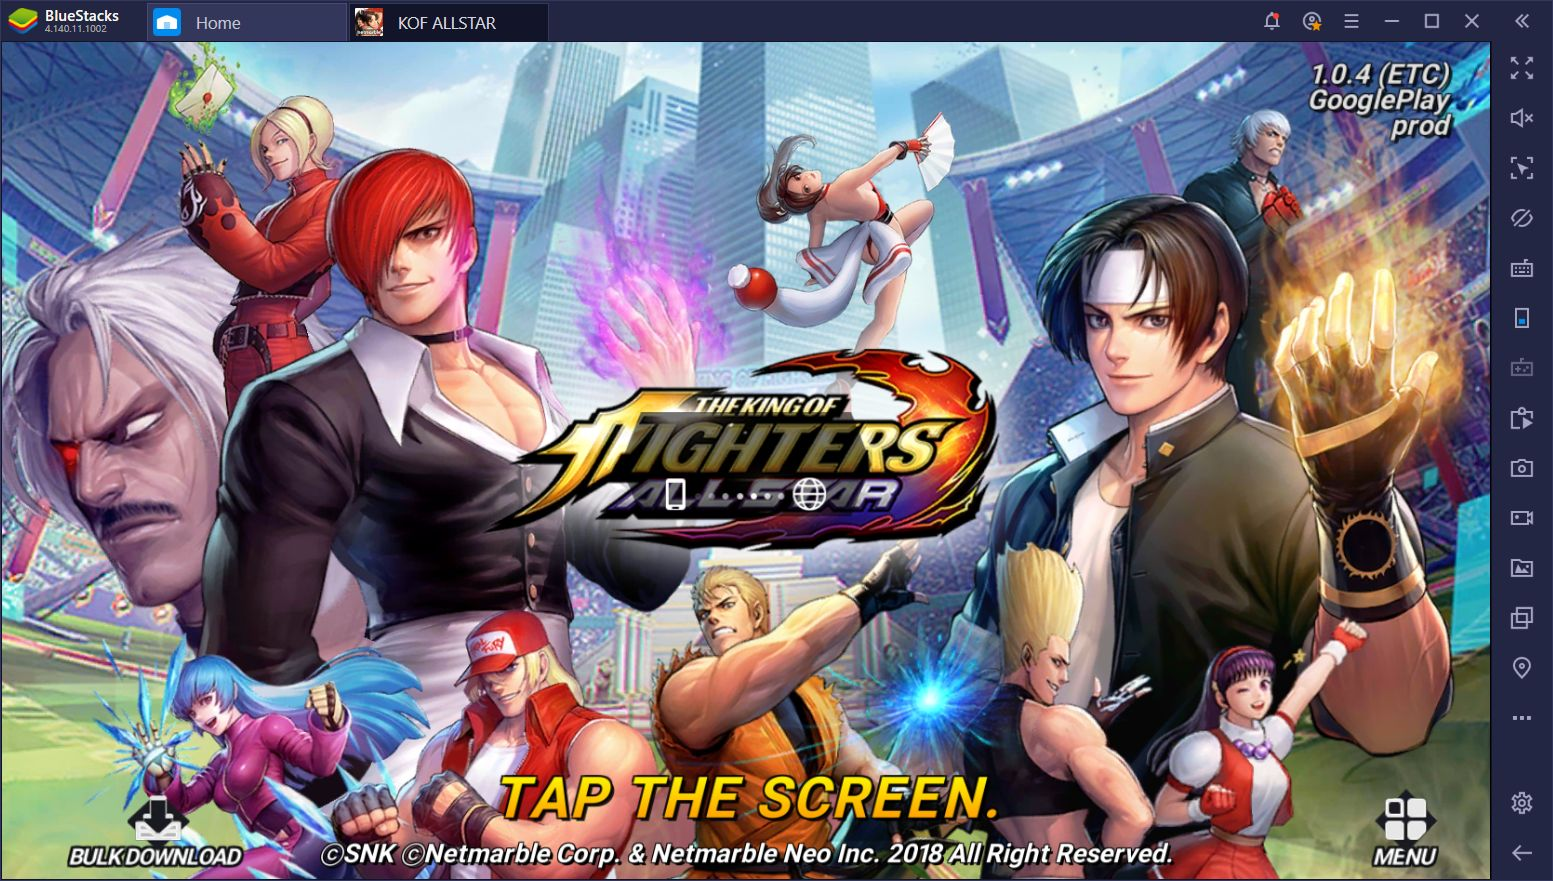 The King of The Fighters ALLSTAR: Rekabette Zirveye Çıkaracak Taktikler ve İpuçları